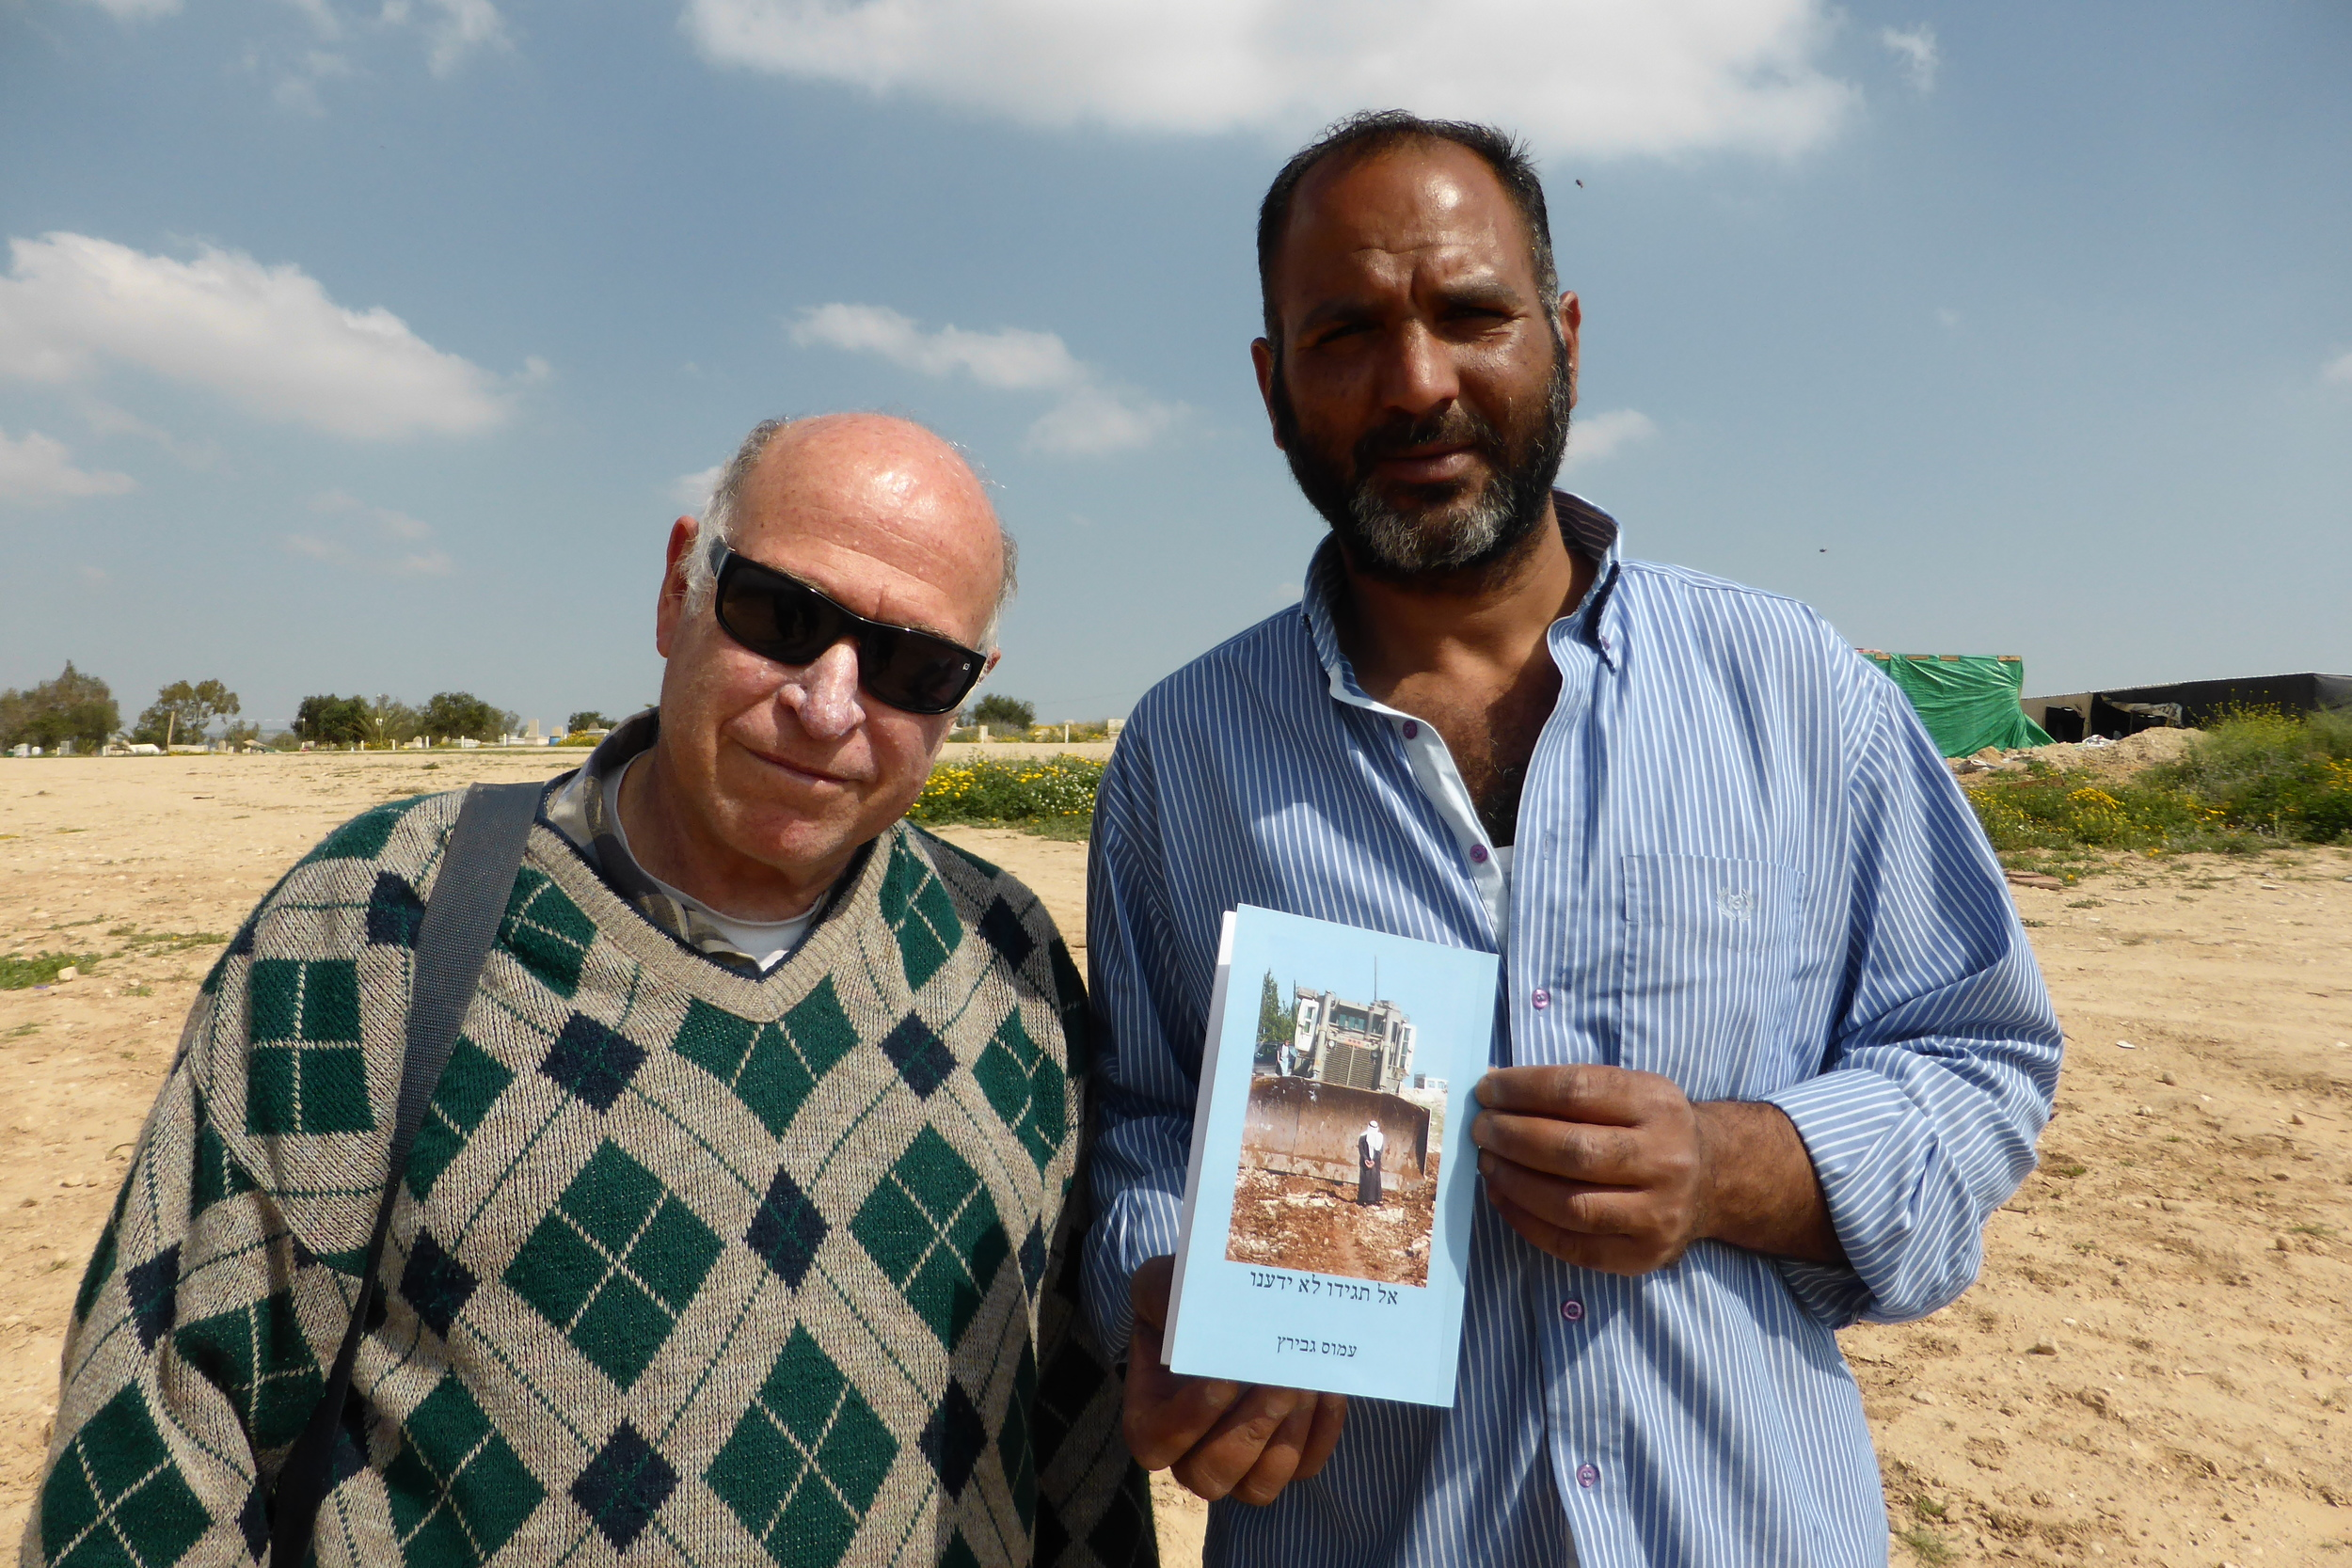 Amos Gvirtz and friend Aziz show Amos's new book, to be published in Hebrew in April. Aziz is one of the residents of El Araqib village in the Negev, which has been demolished over 80 times.